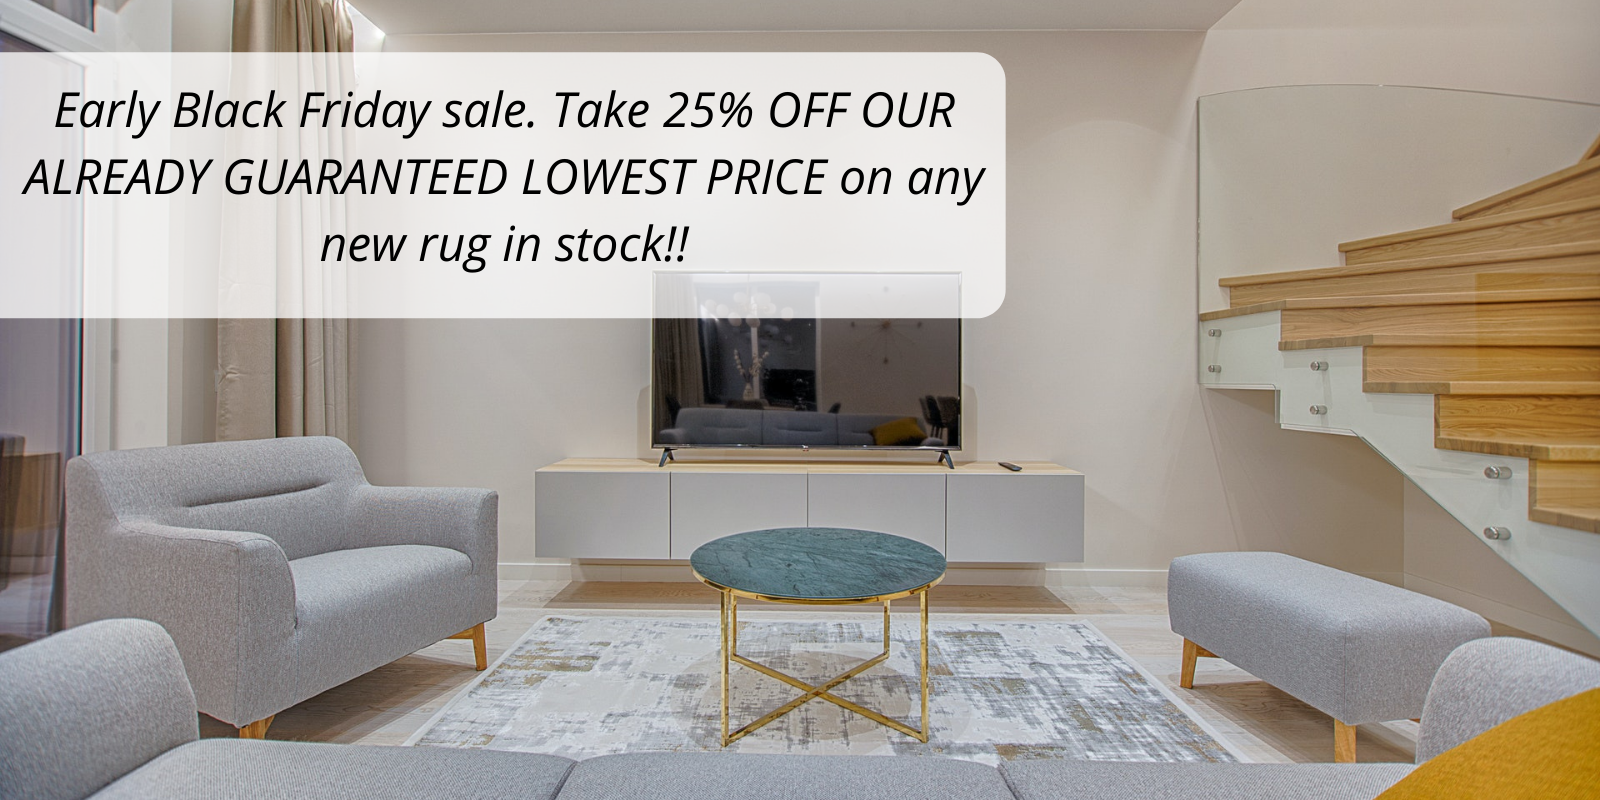 Early Black Friday sale. Take 25% OFF OUR ALREADY GUARANTEED LOWEST PRICE on any new rug in stock!! (1)